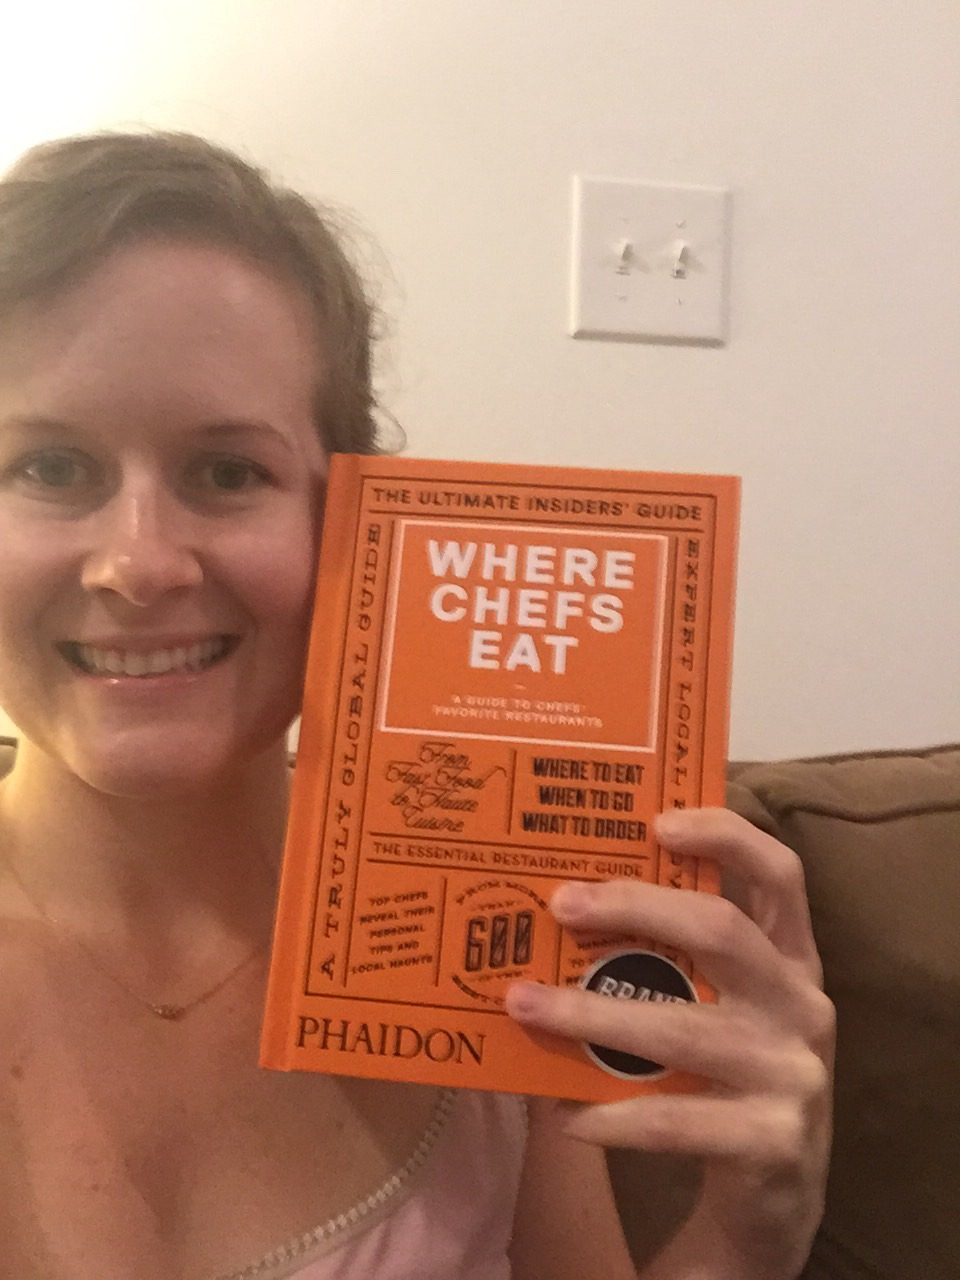 Really can't wait to explore the world using this book!!! #wherechefseat